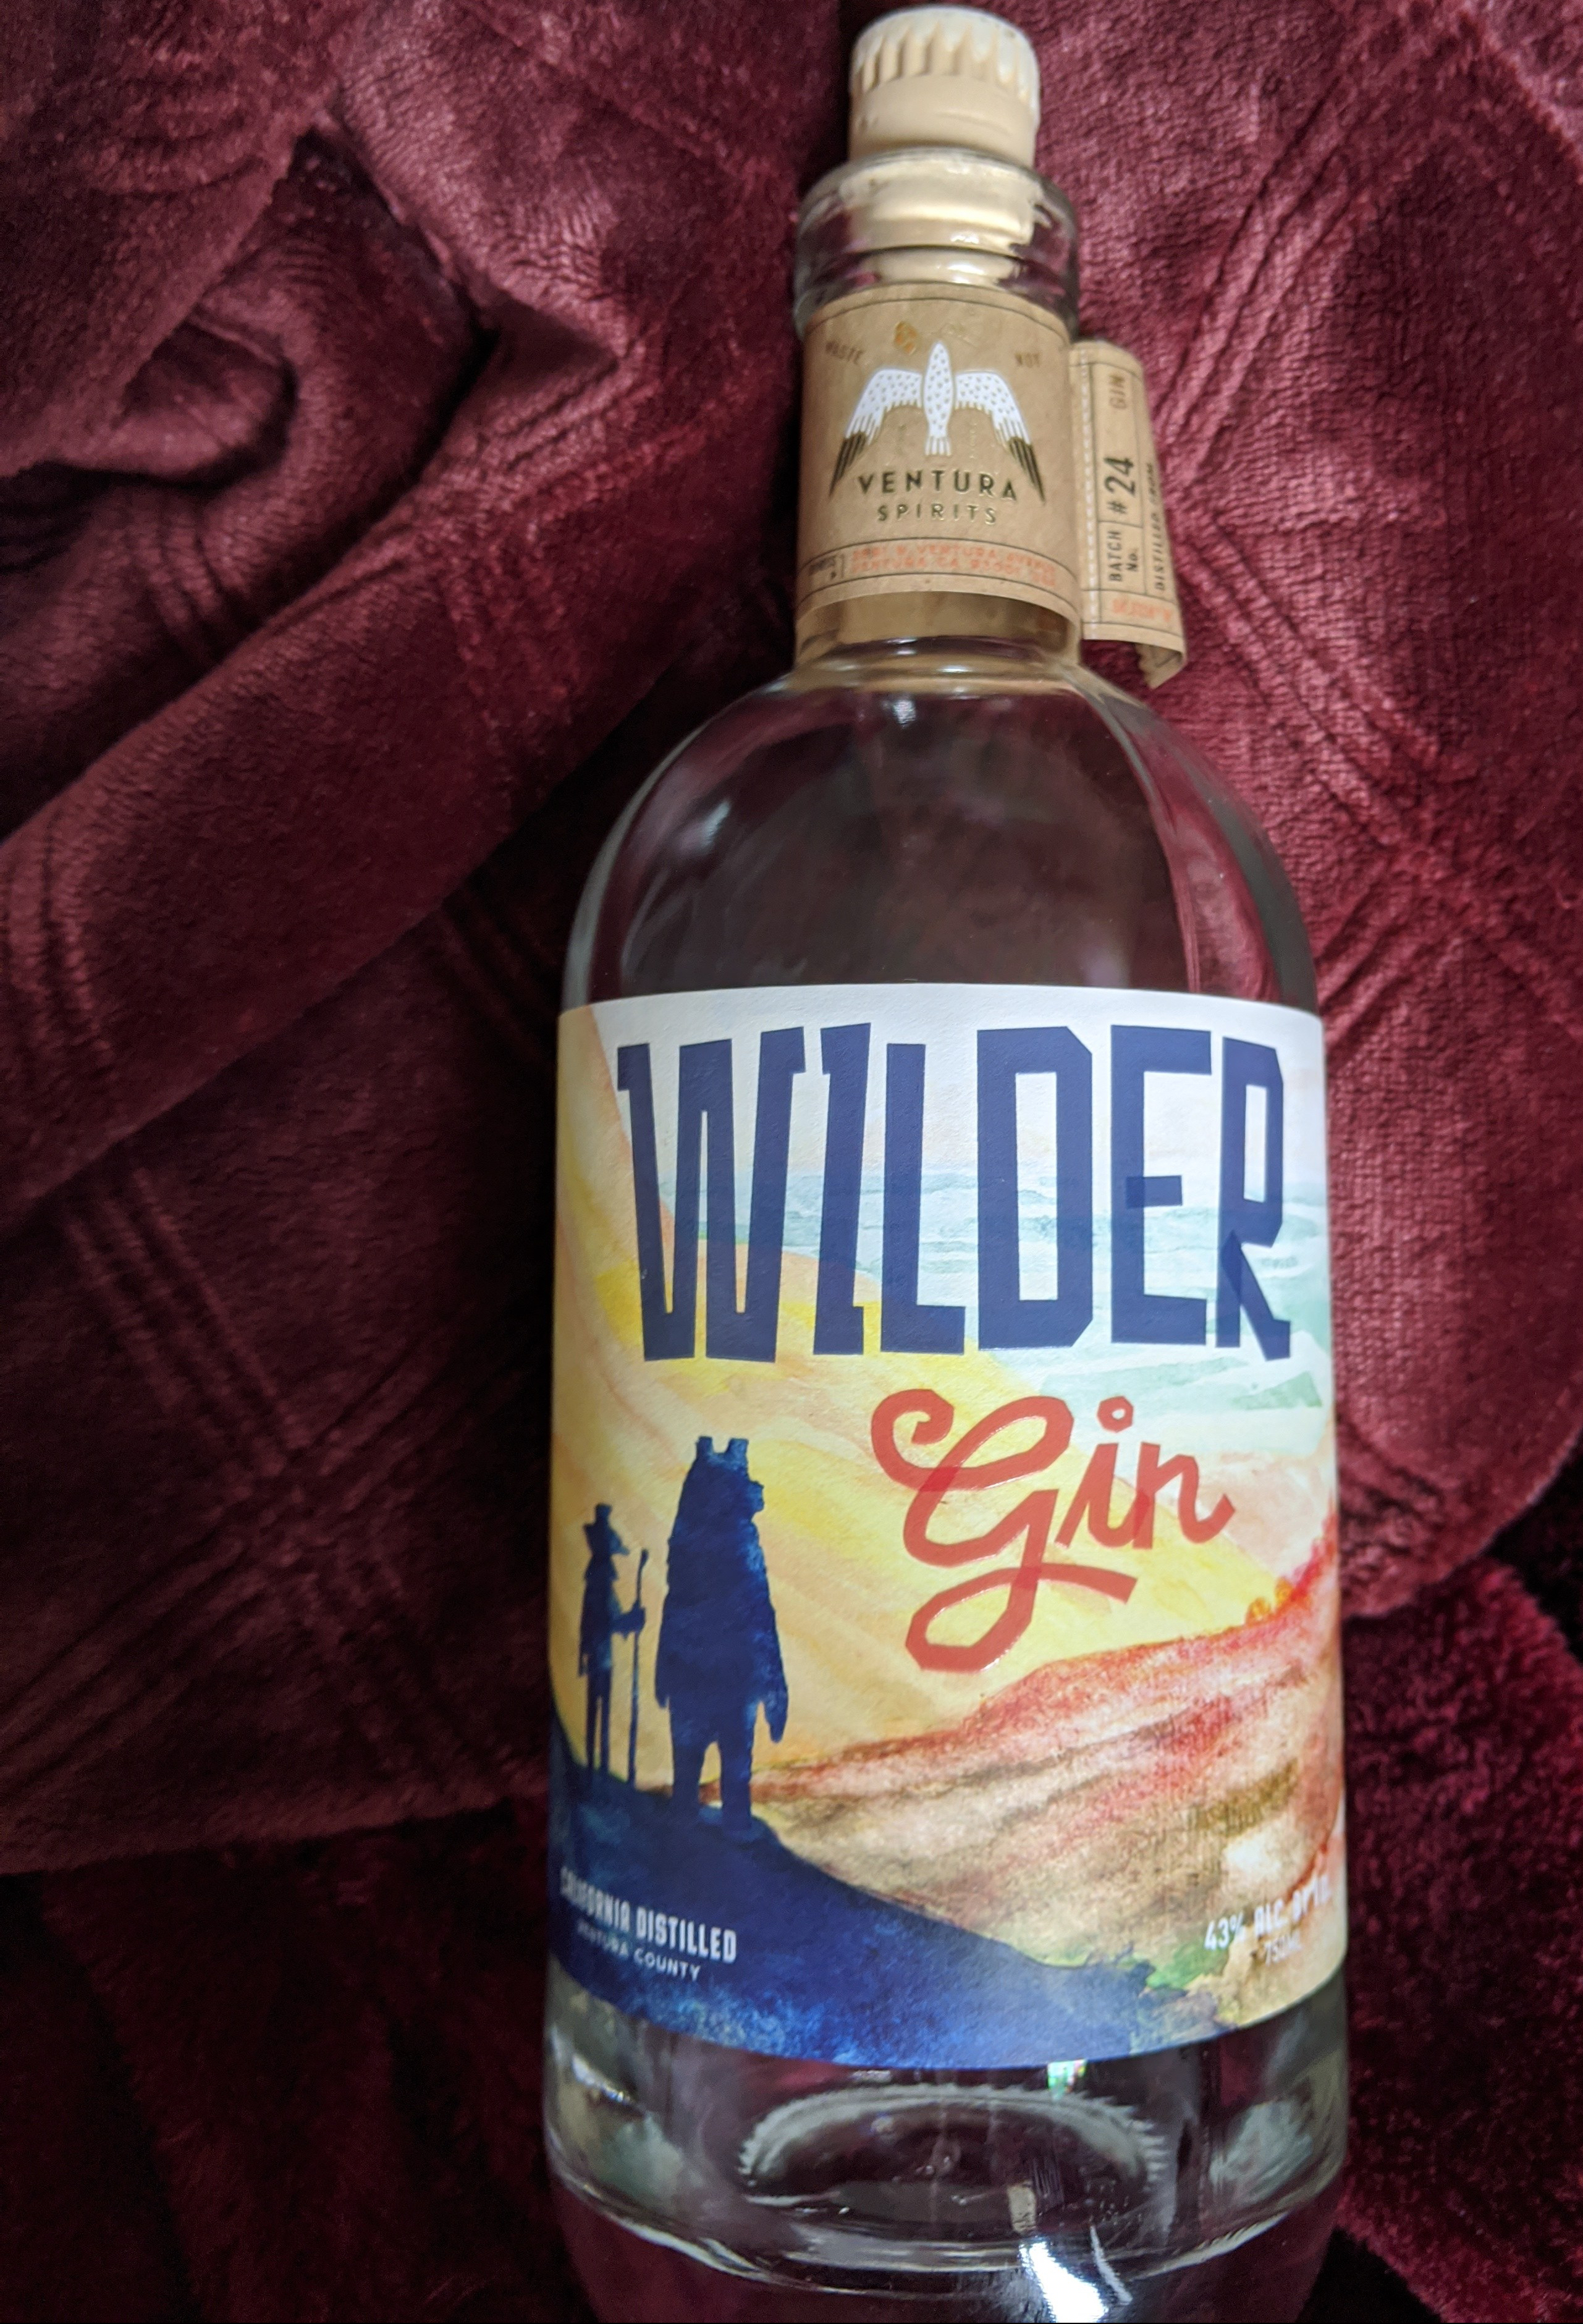 bottle of Wilder Gin from Ventura Spirits company